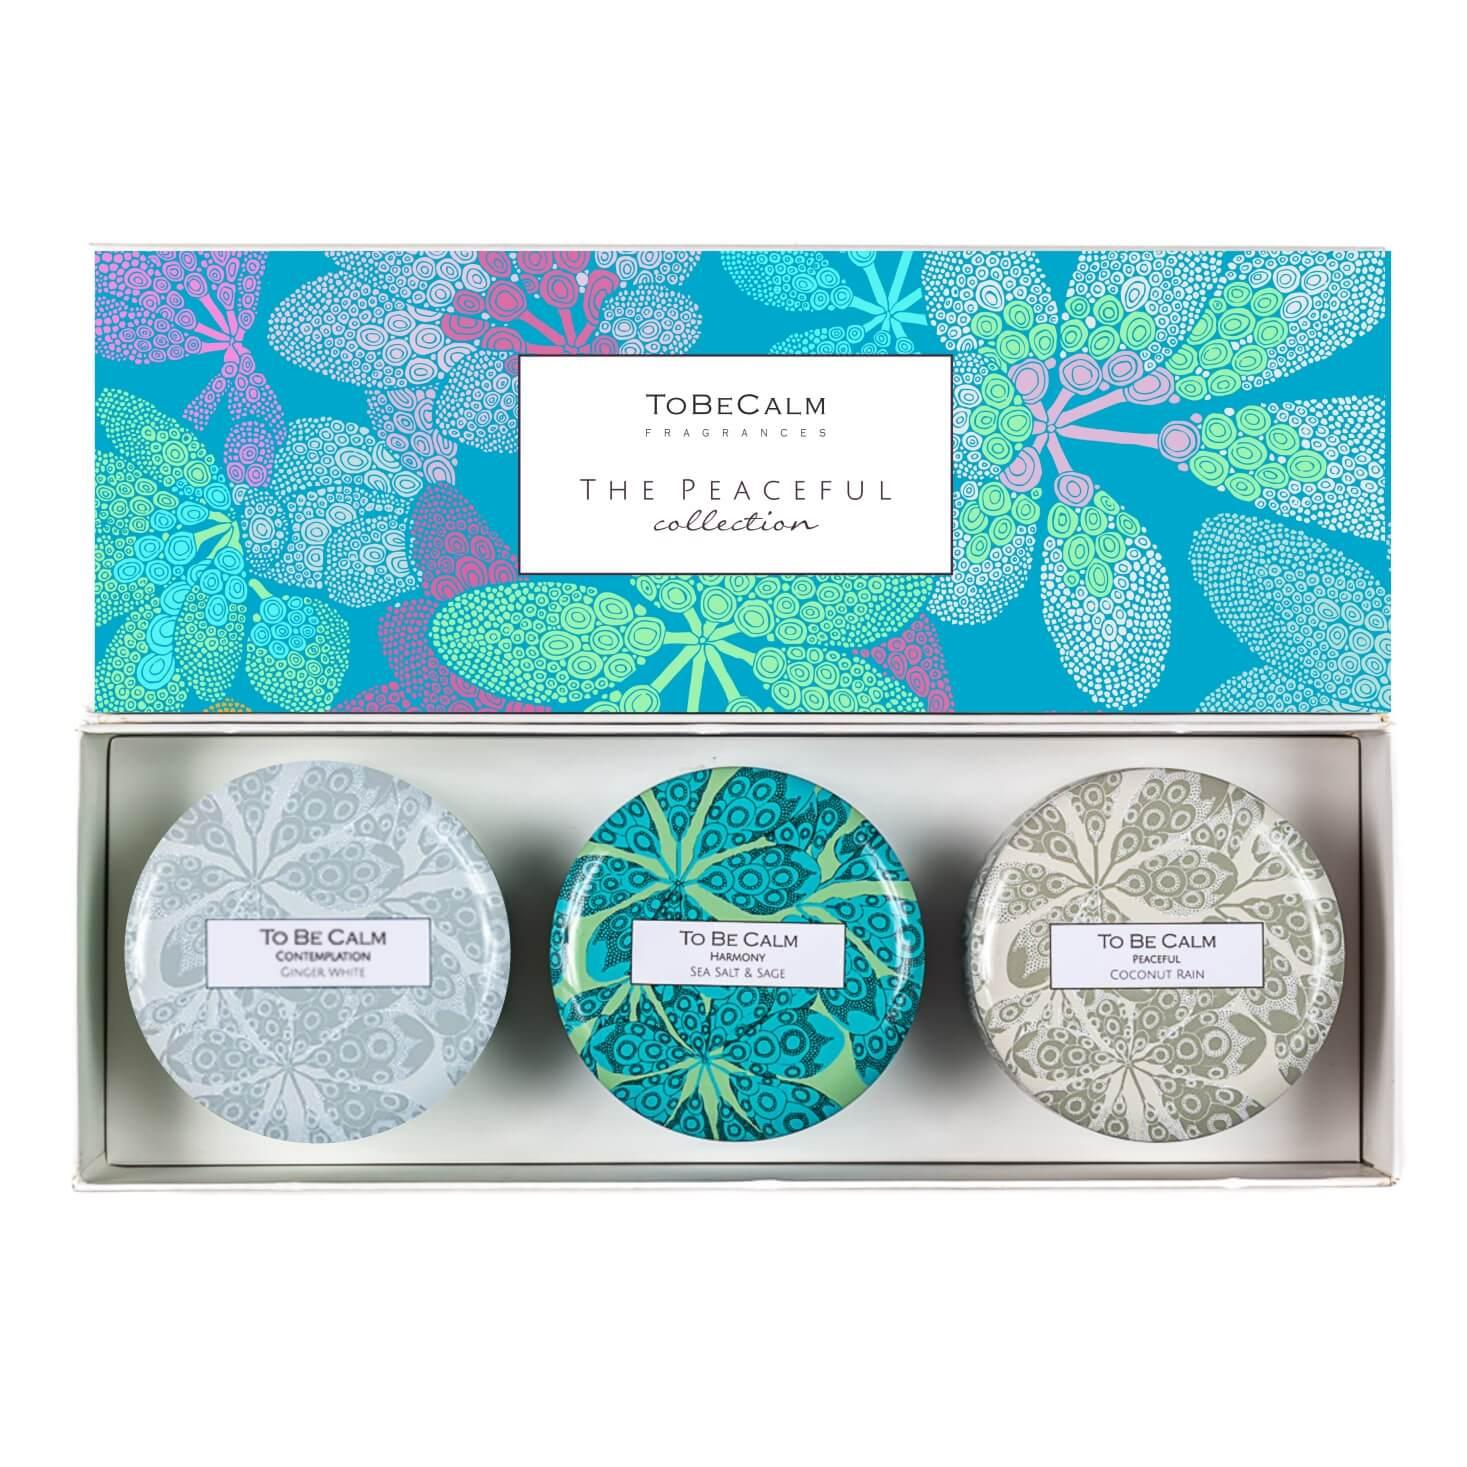 To Be Calm Peaceful Collection - Mini Candle Trio